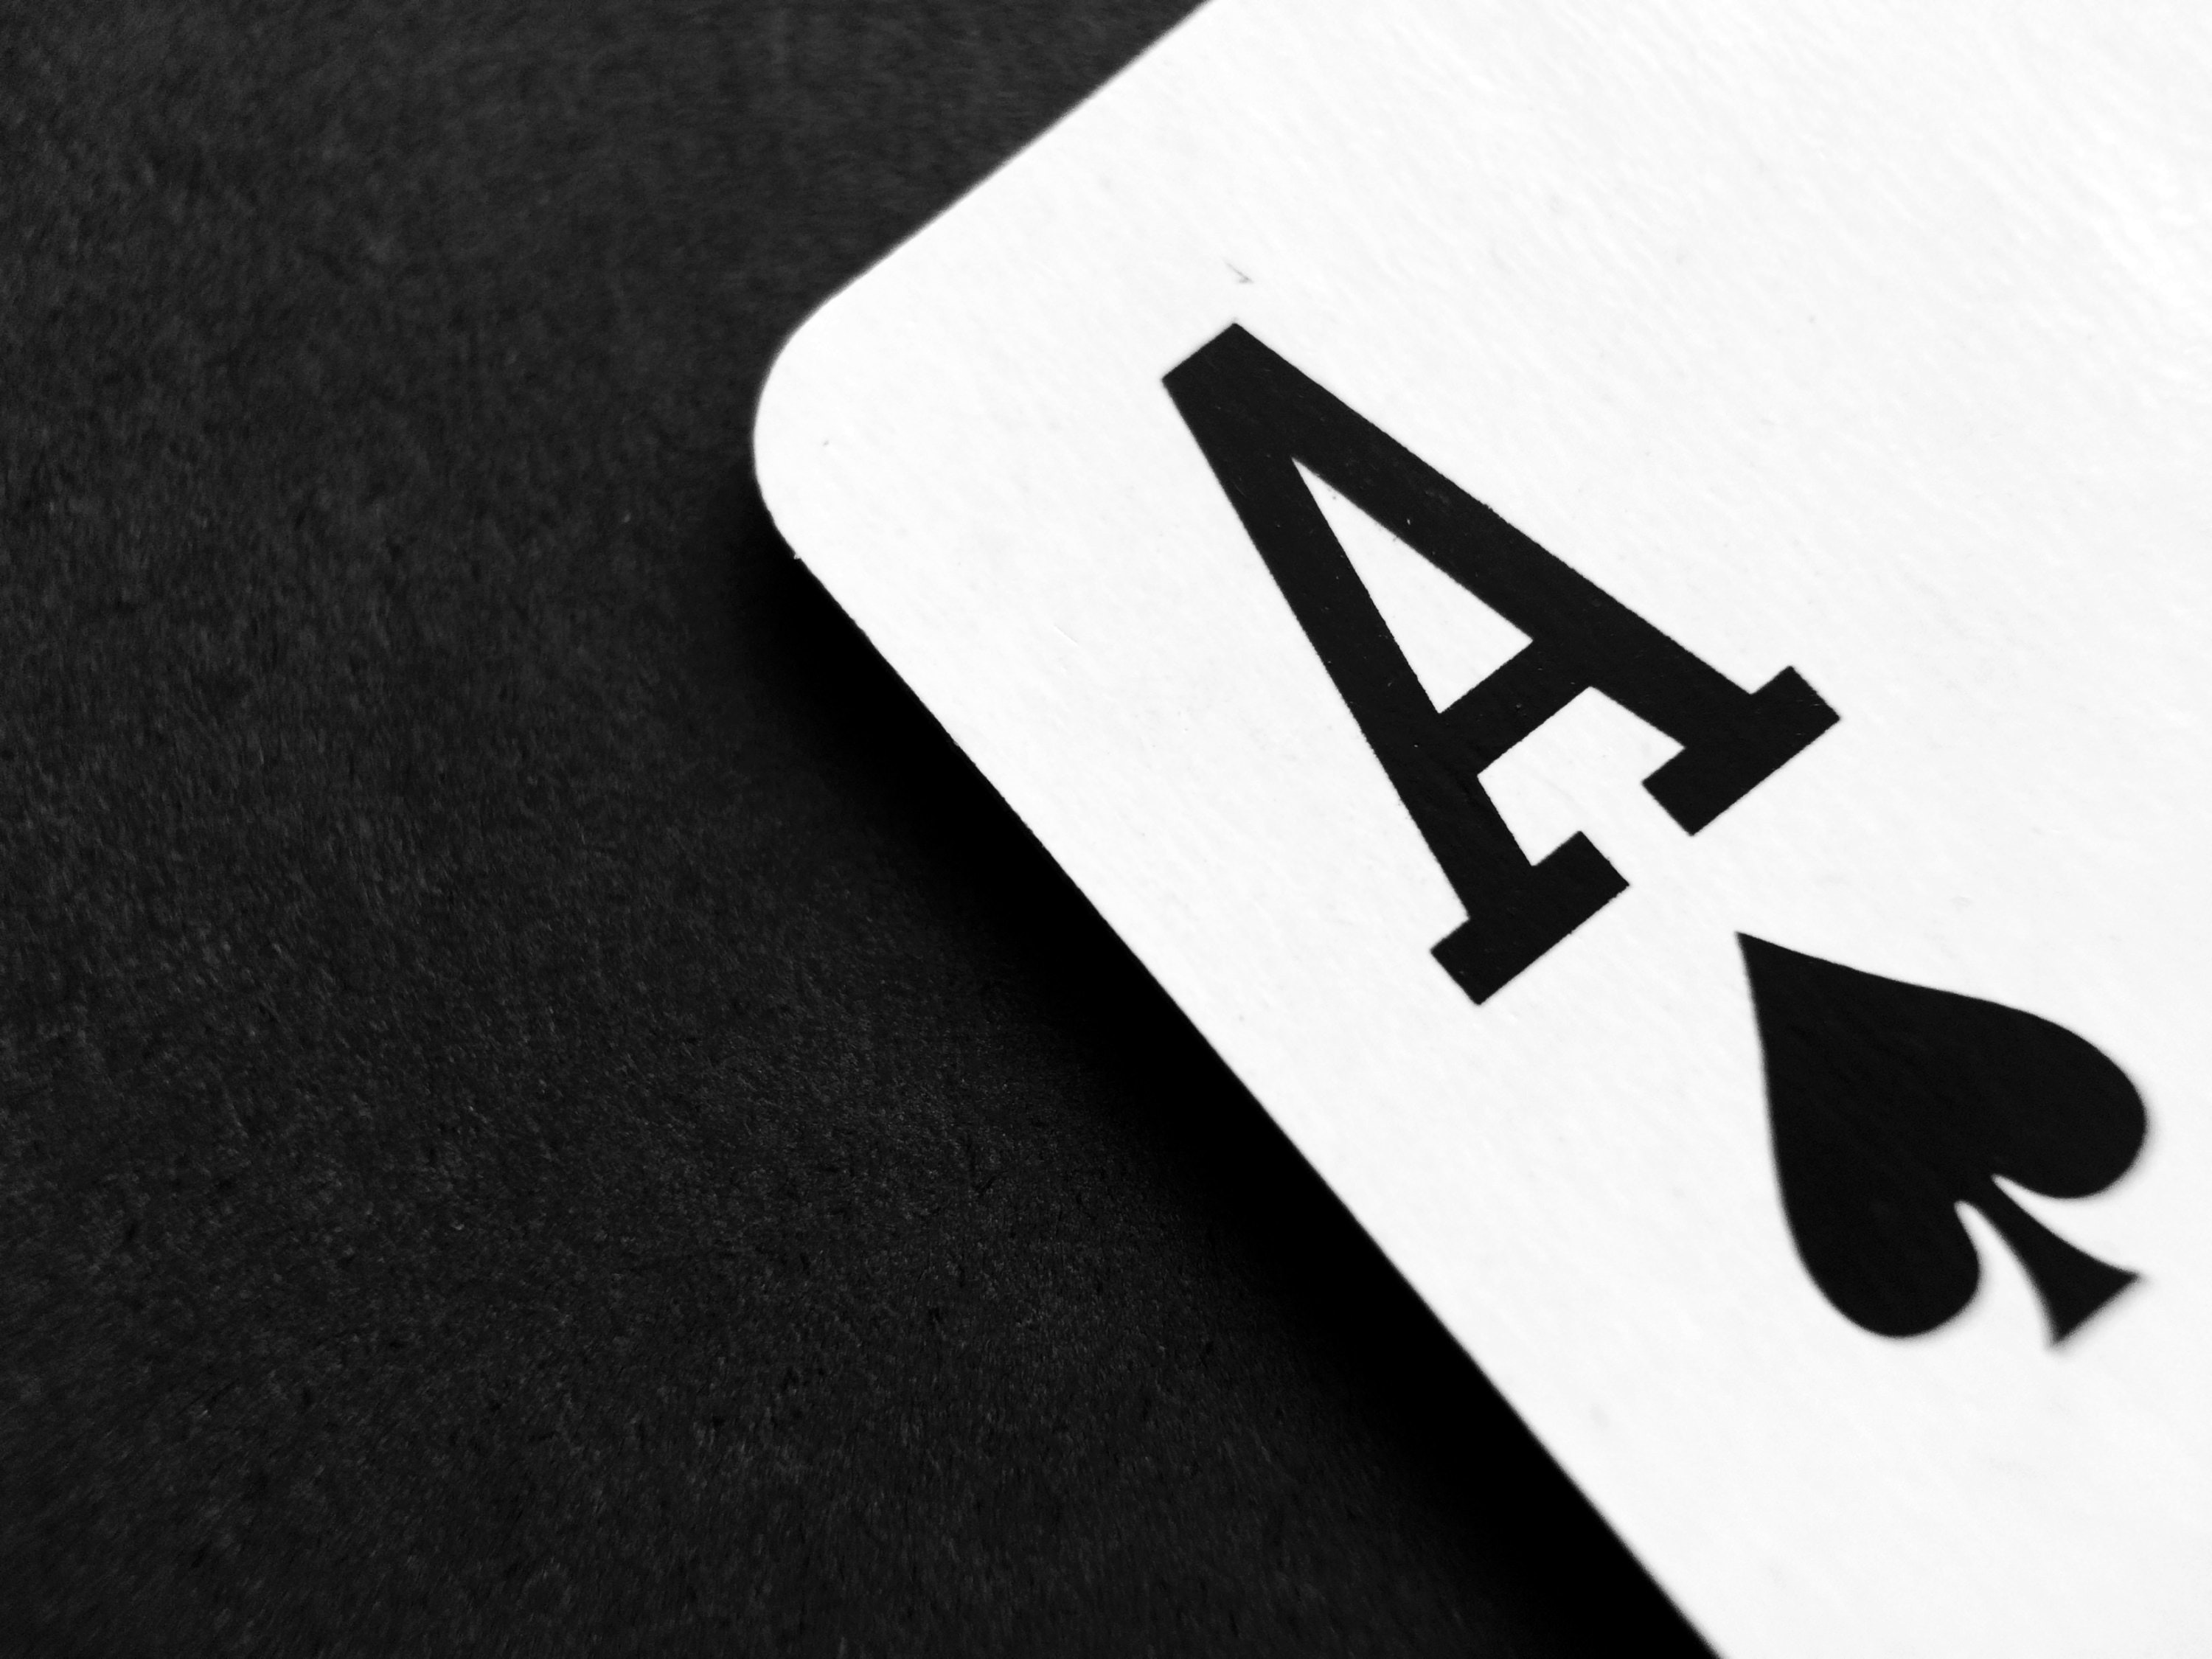 ace-card-casino-262333.jpg